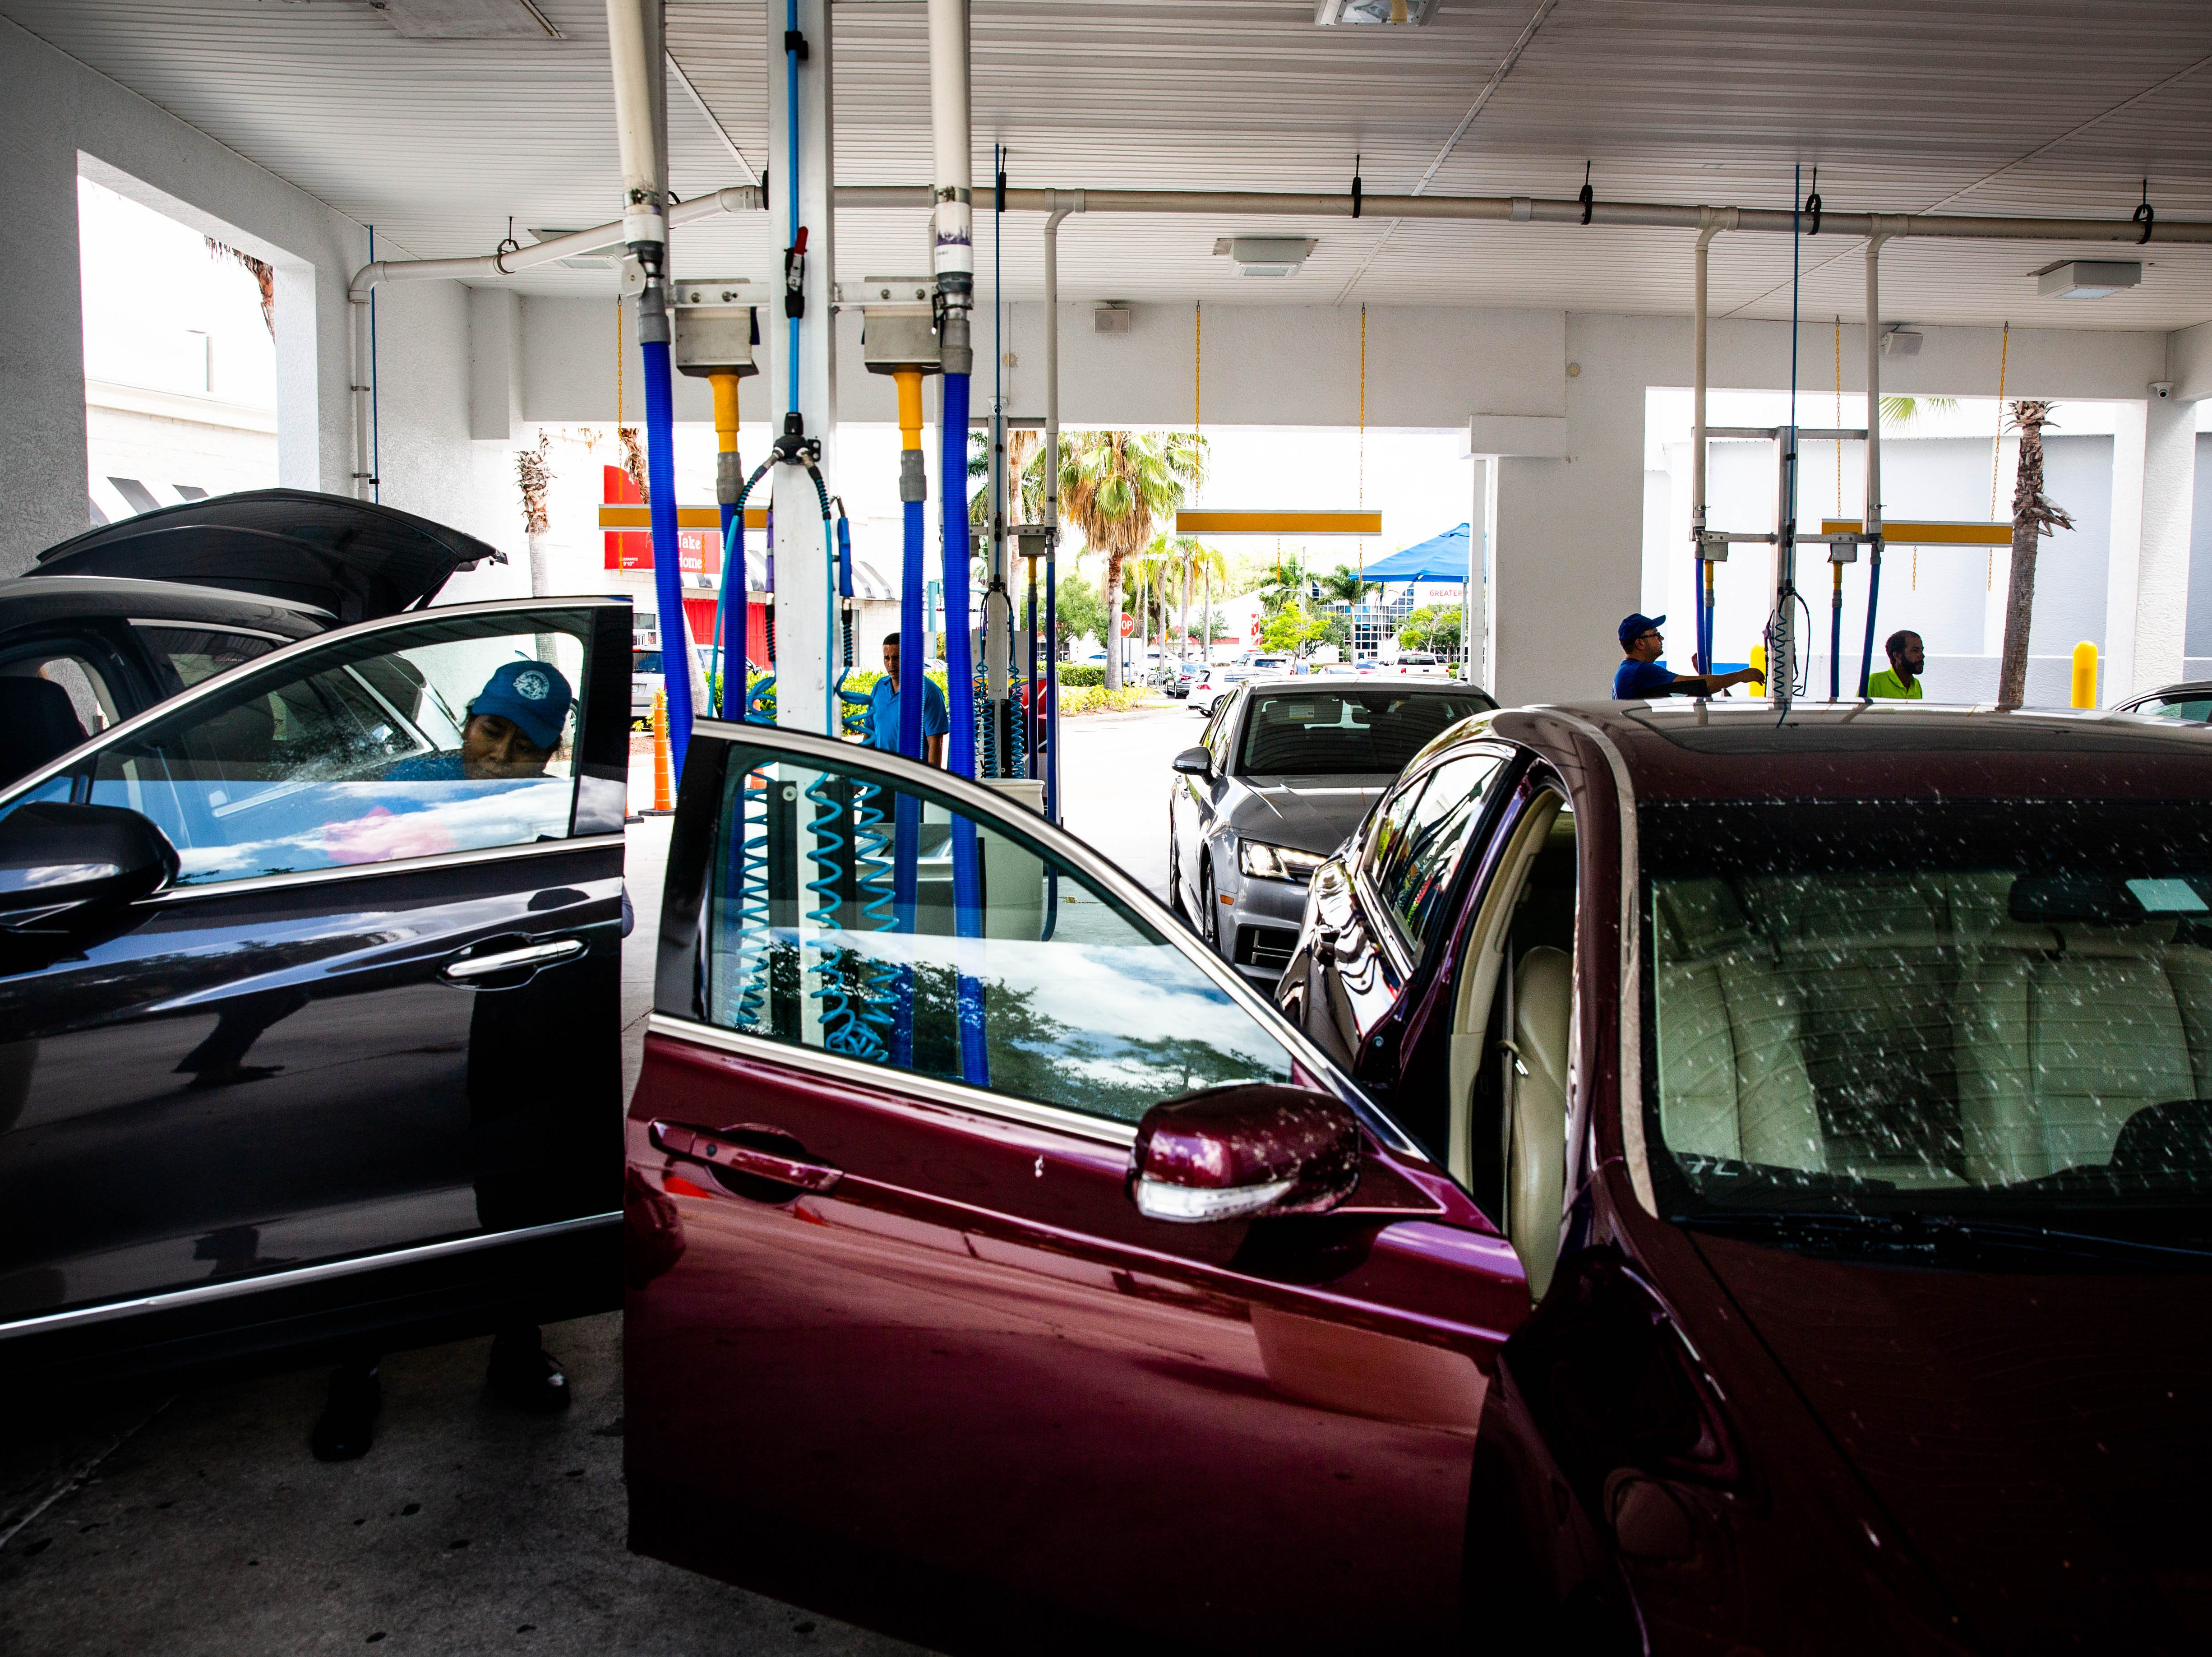 Employees clean a line of cars at the Auto Spa car wash in Naples on Friday, May 10, 2019. The car wash has been exceptionally busy due to the presence of lovebugs in Southwest Florida.